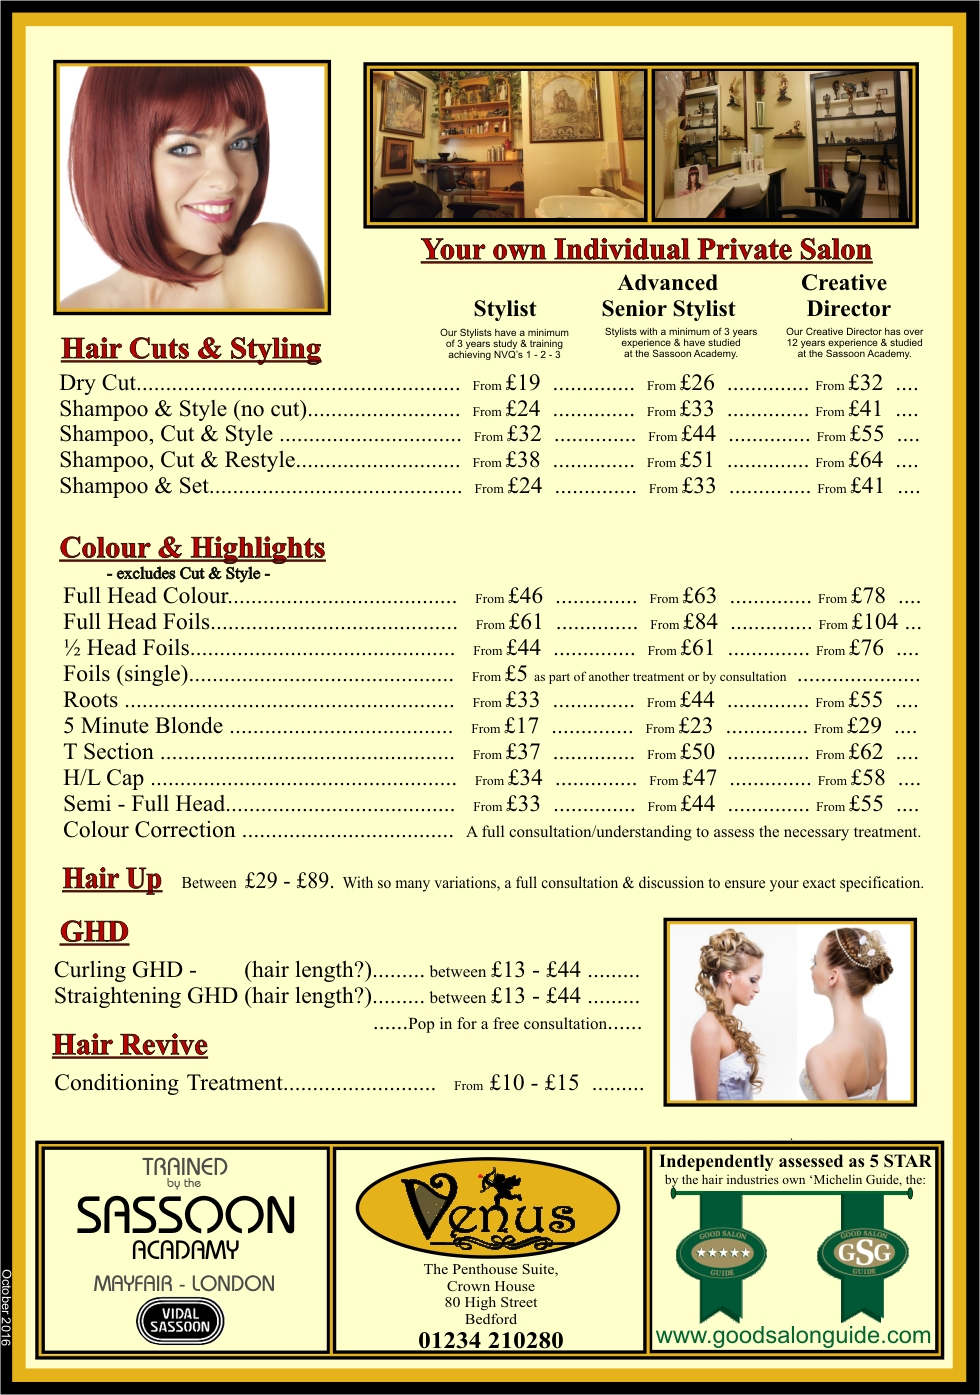 Venus Hair and Beauty Bedford - Price List 2016